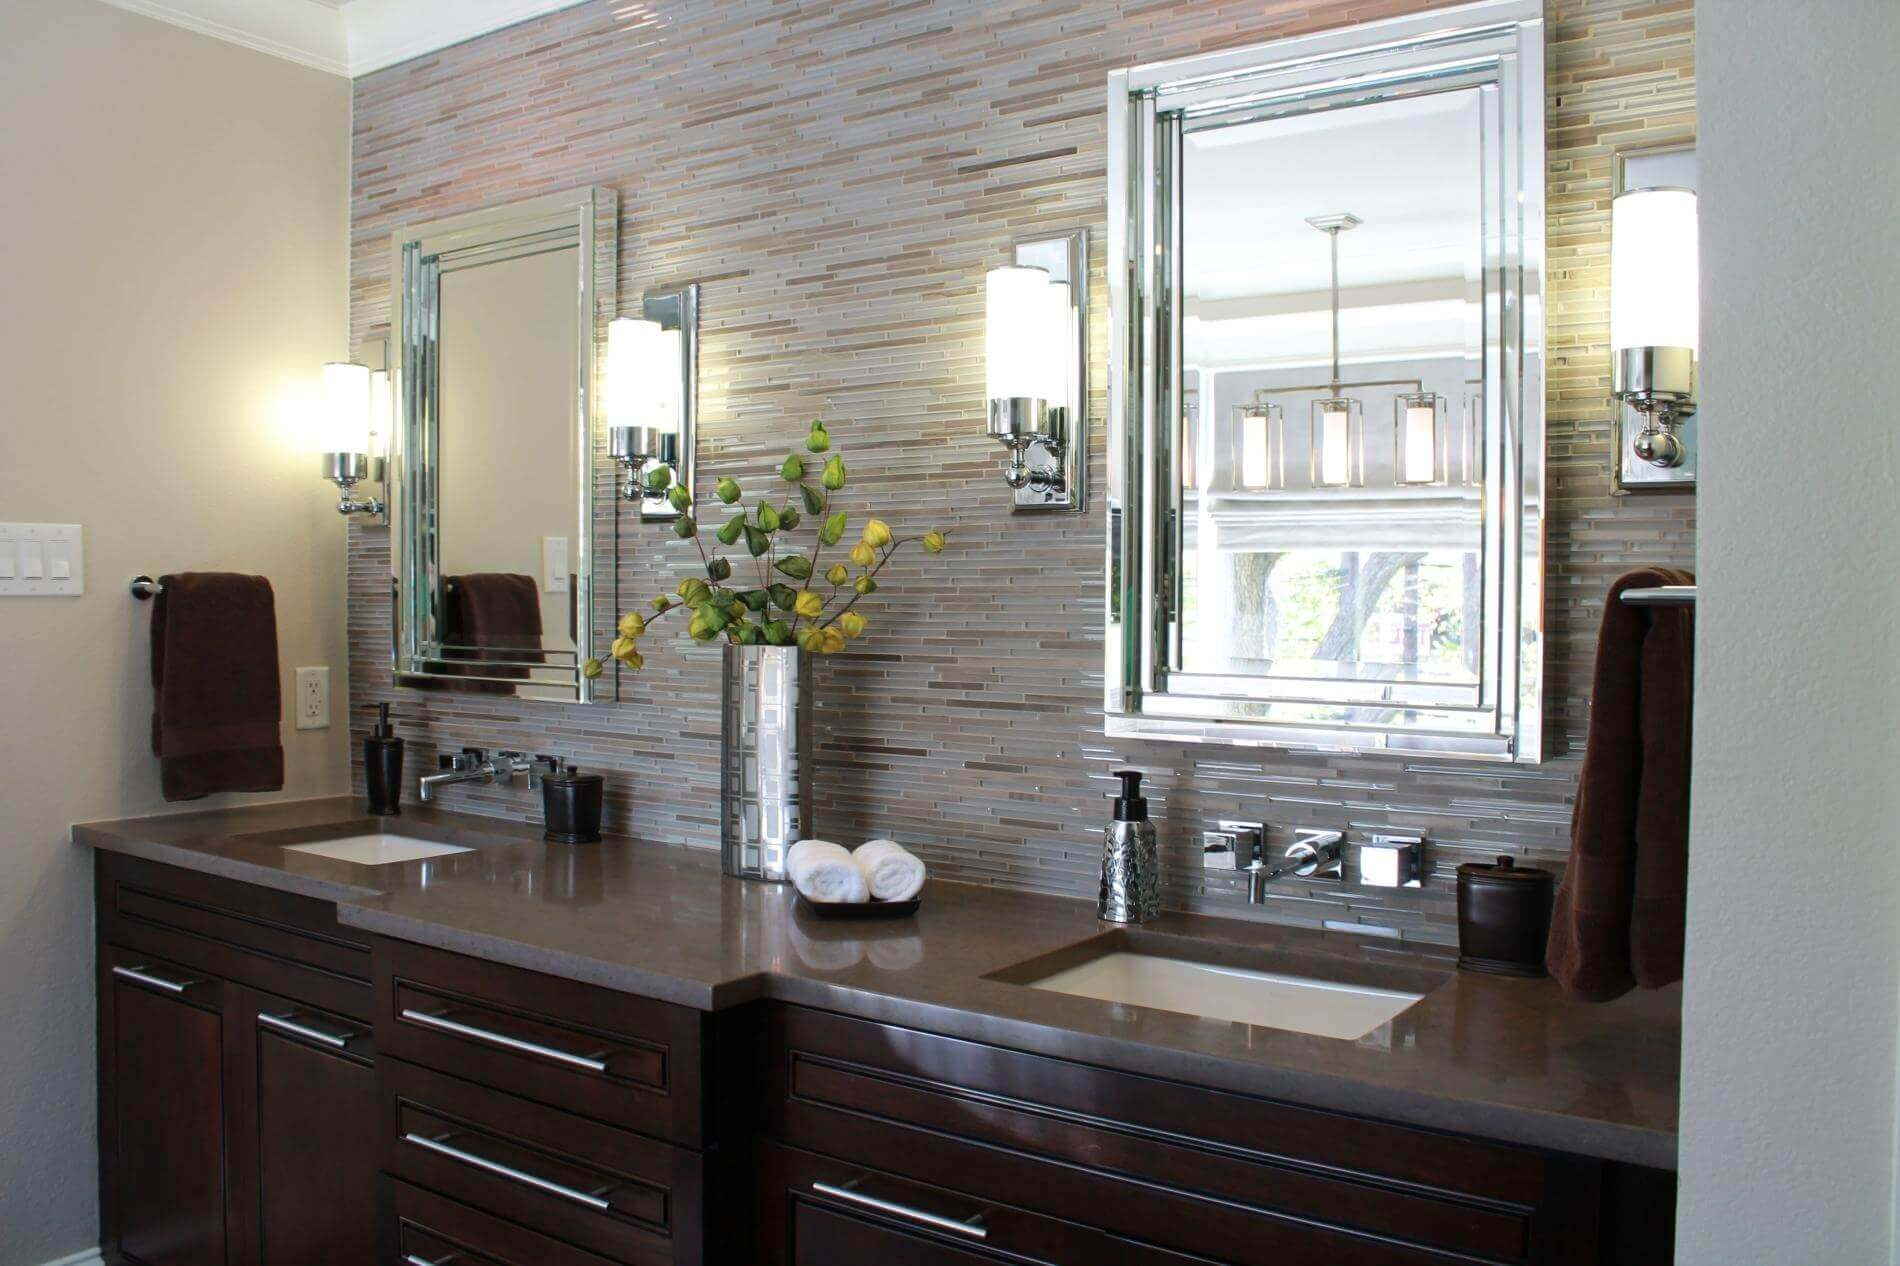 Sconce-bathroom Lighting